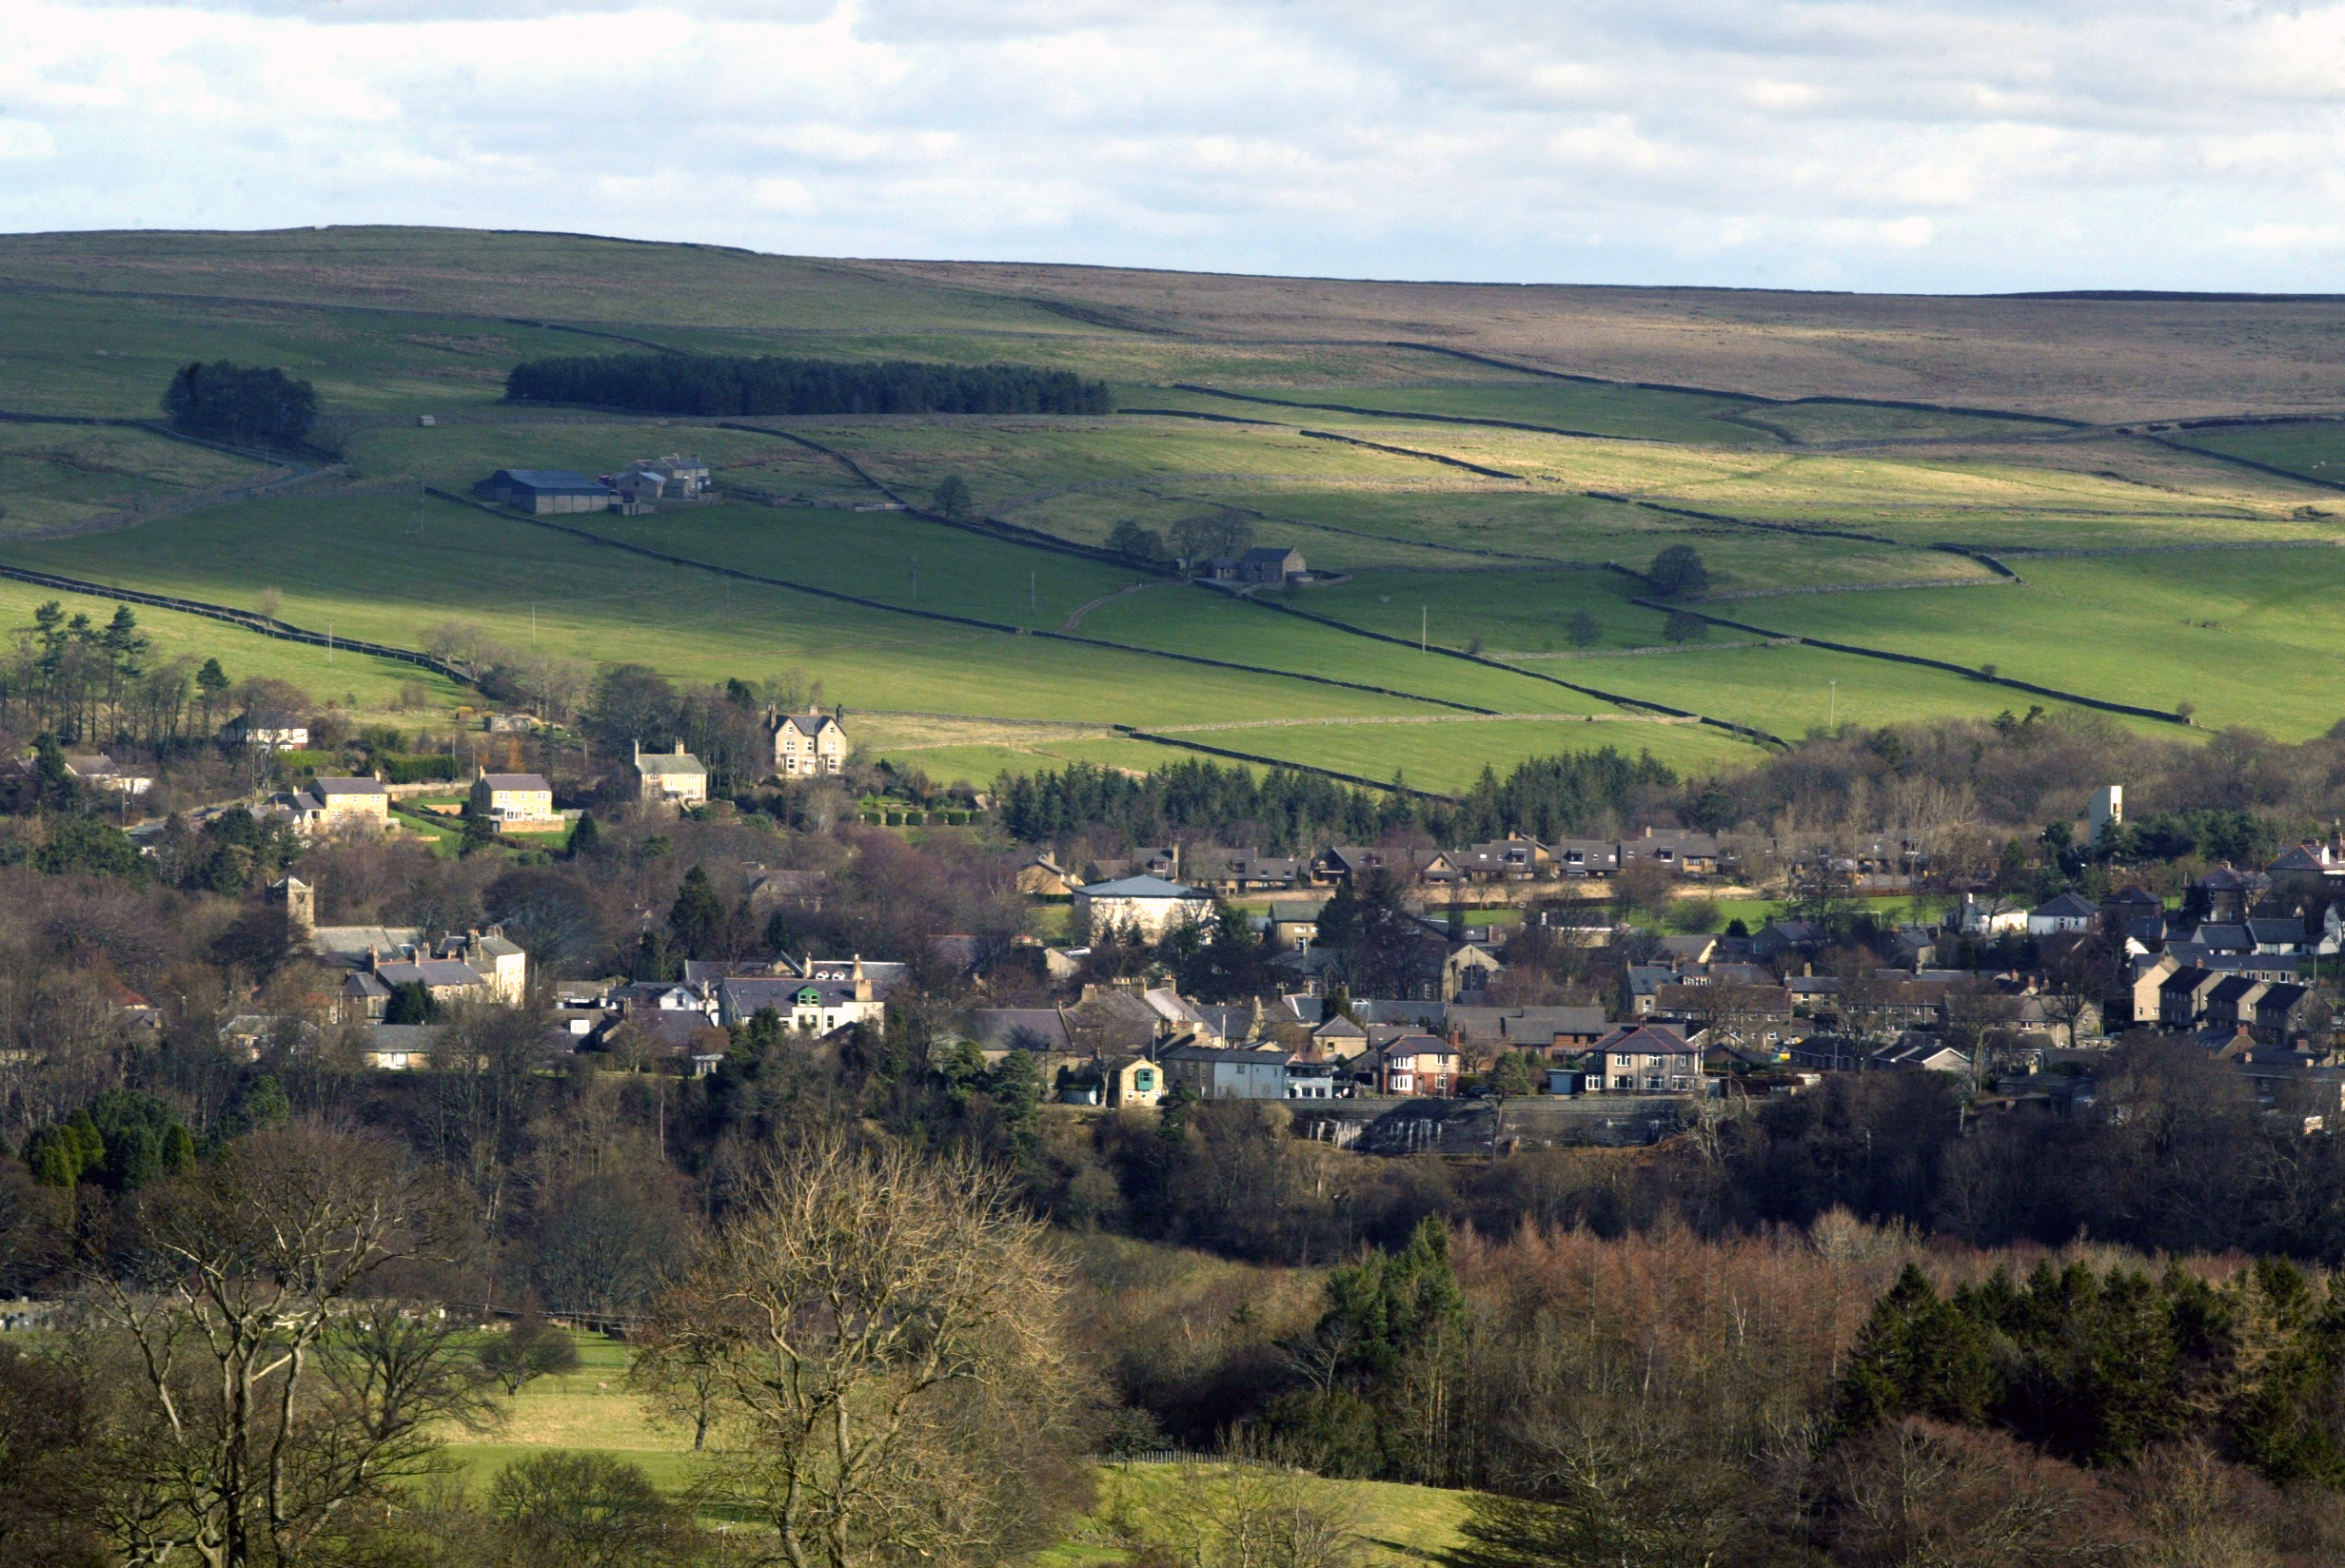 Looking down on Allendale